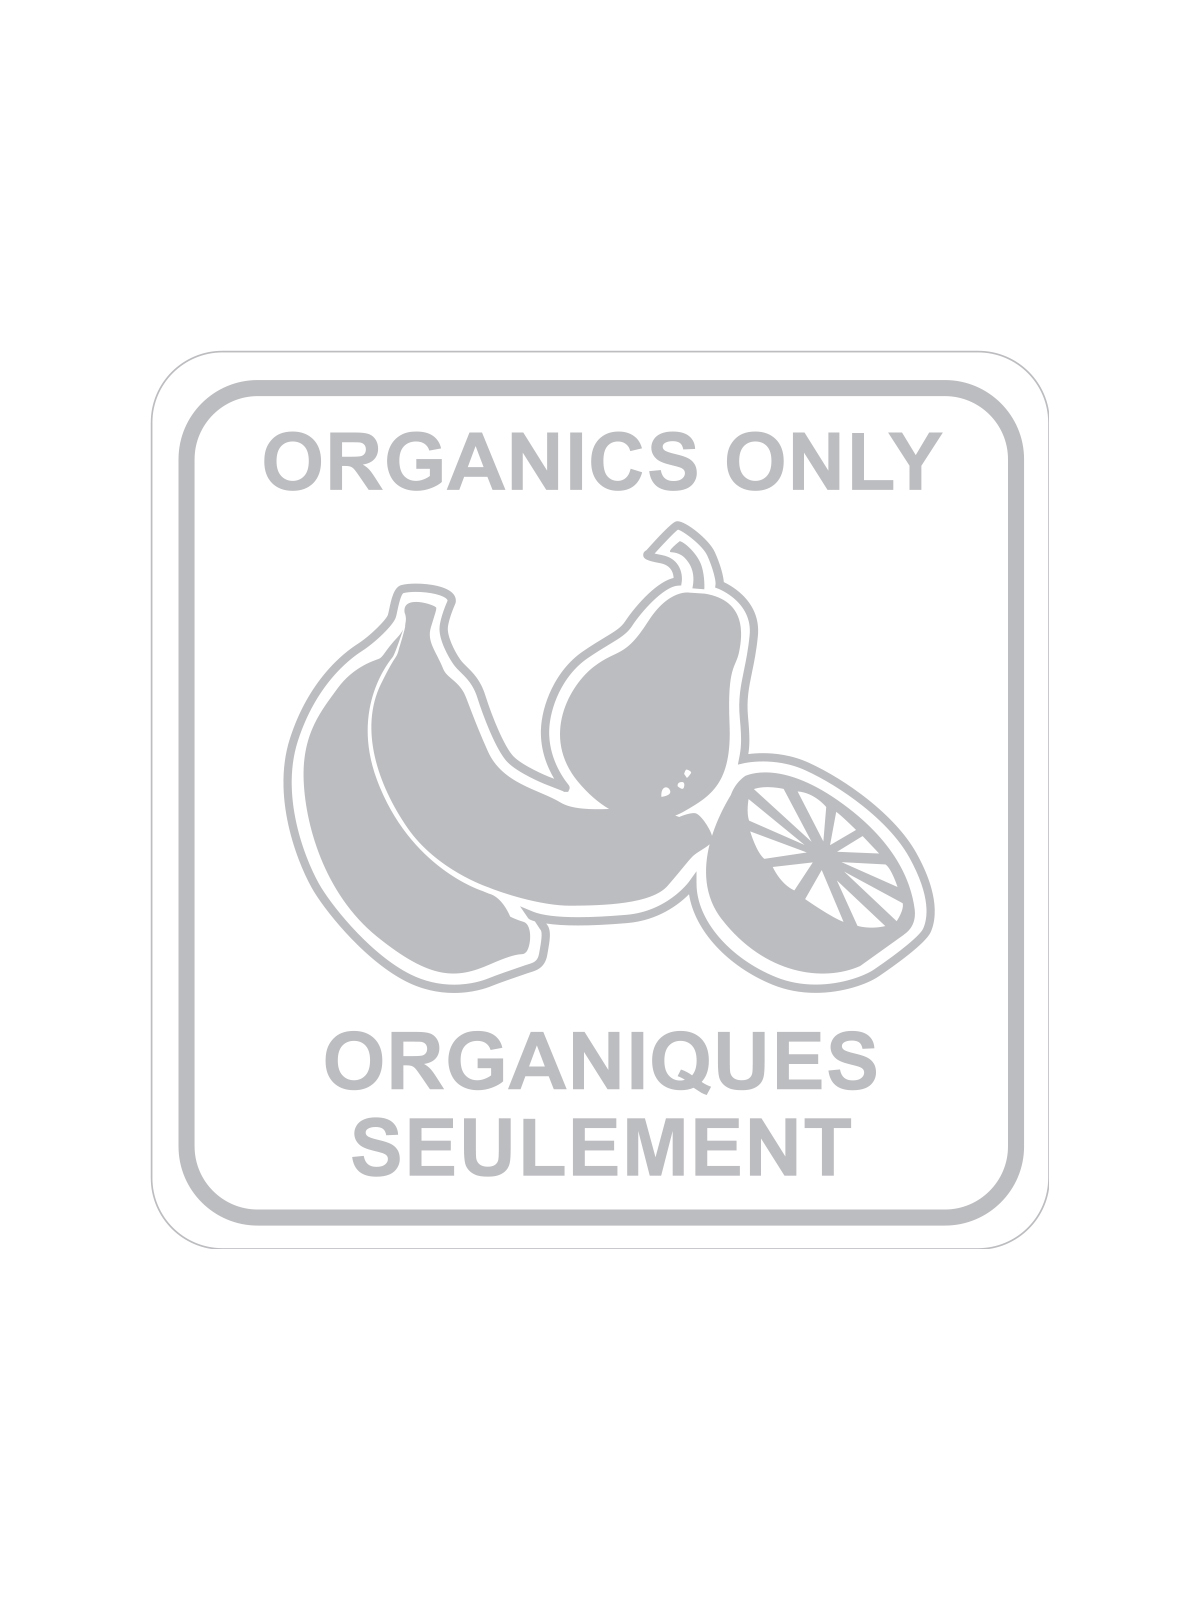 SQUARE LABEL ORGANICS ONLY - ENG/FRE